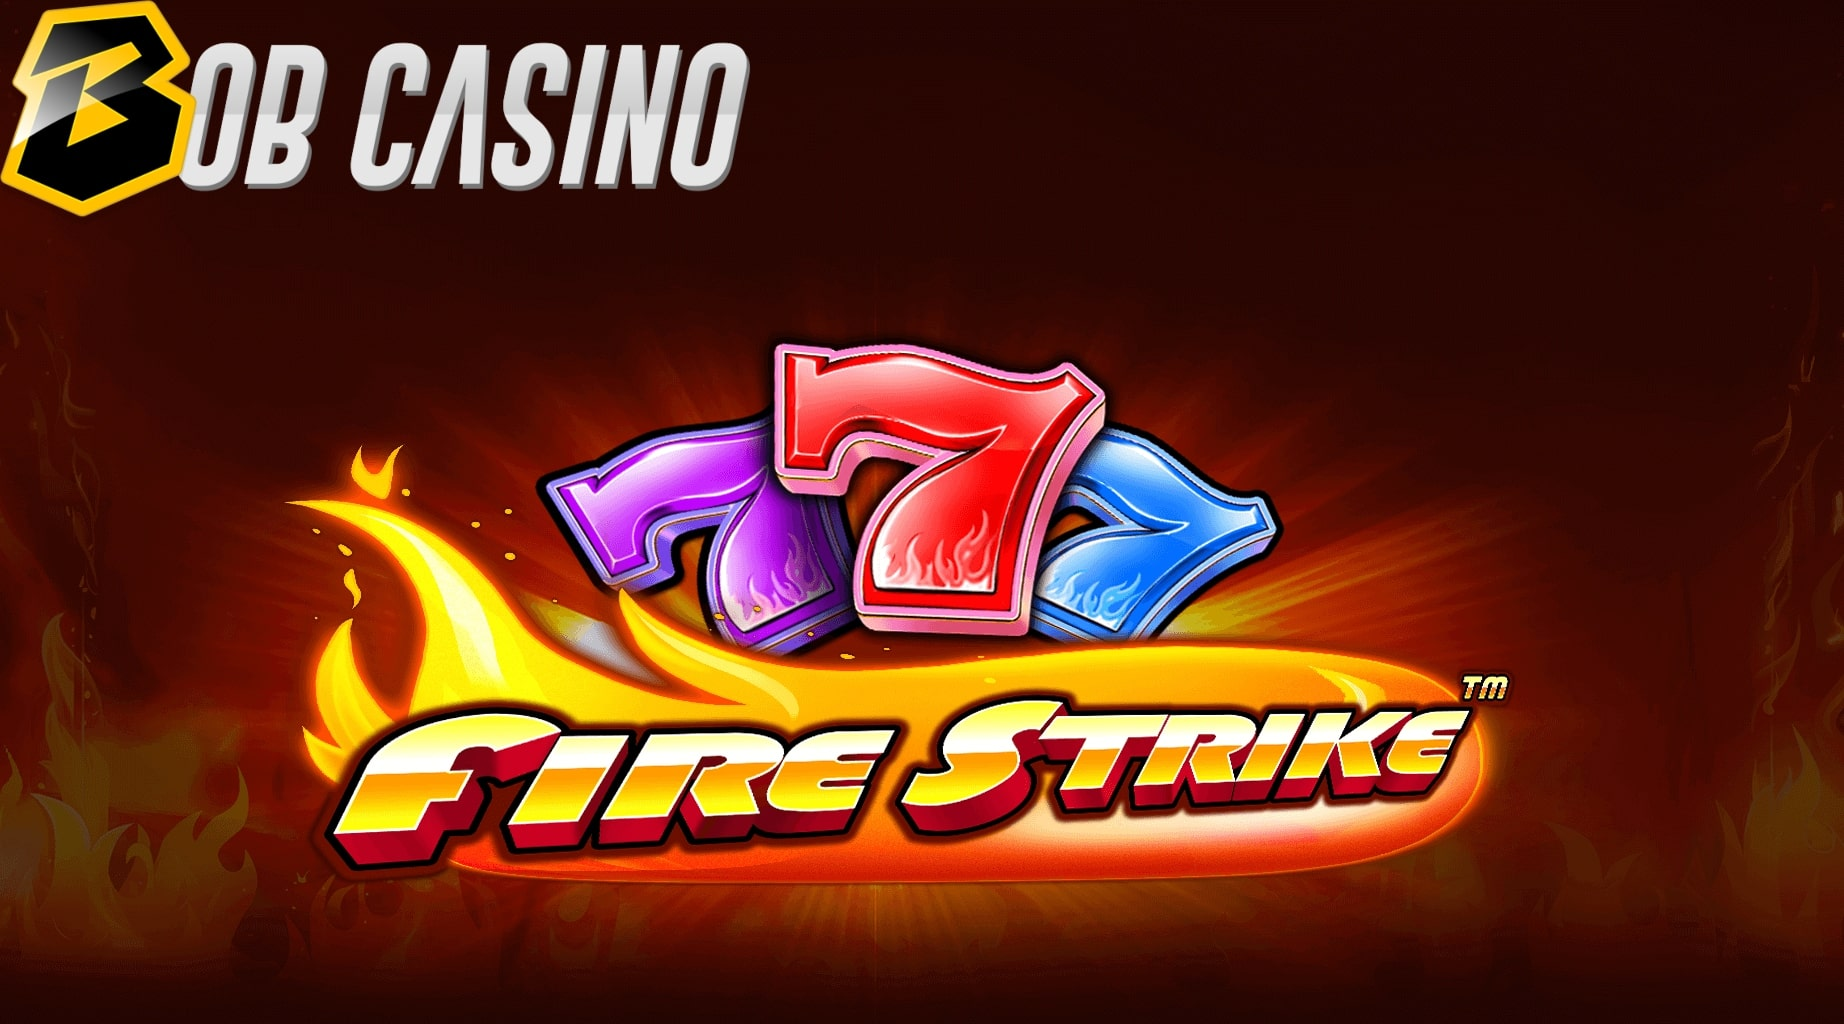 Three lucky sevens in the Fire Strike slot logo from Pragmatic Play.